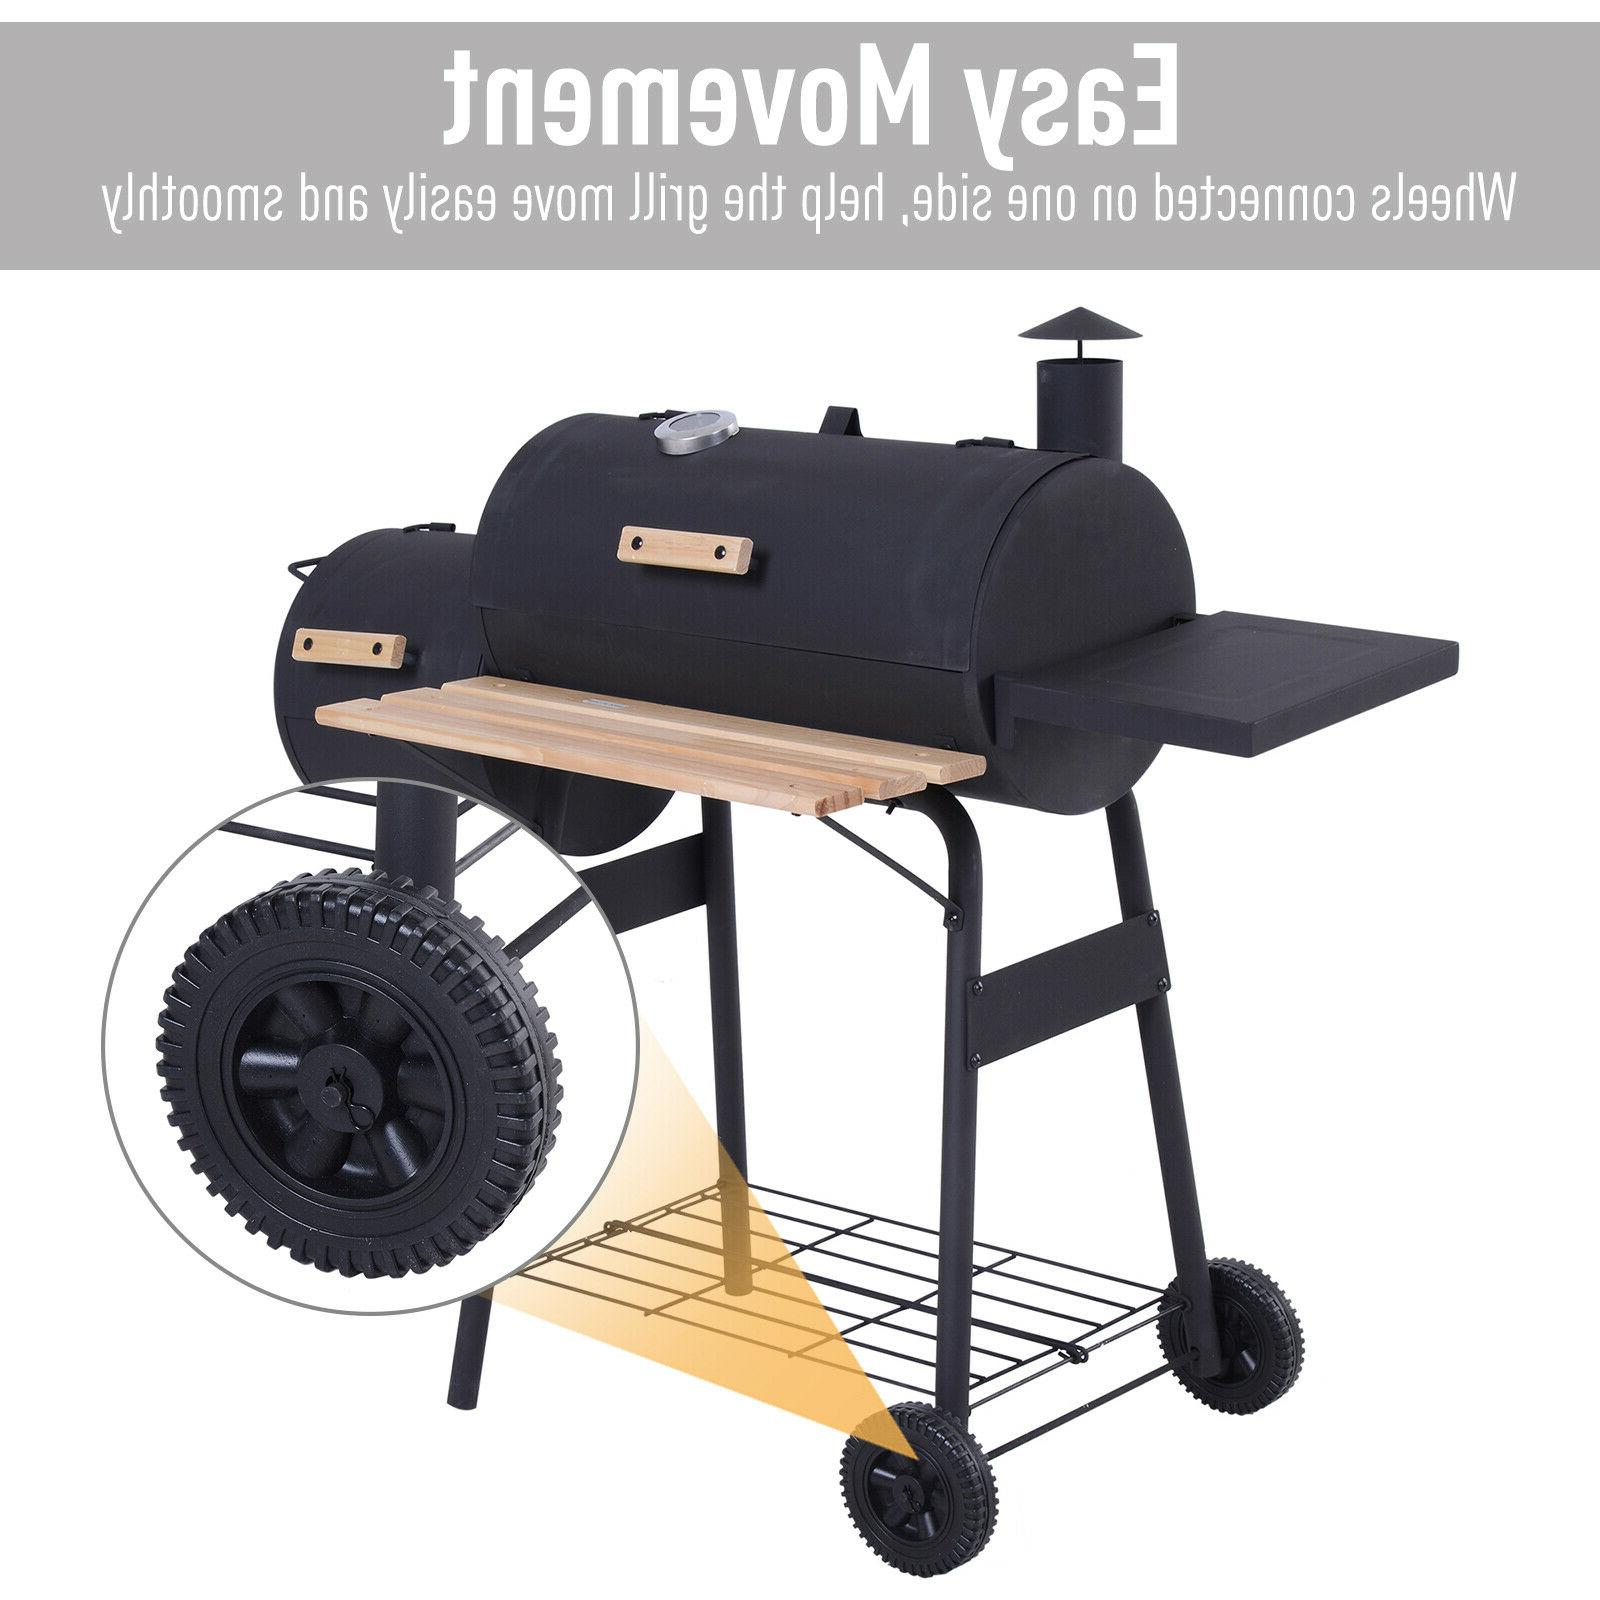 Outsunny Steel Backyard Charcoal Grill and Smoker Combo